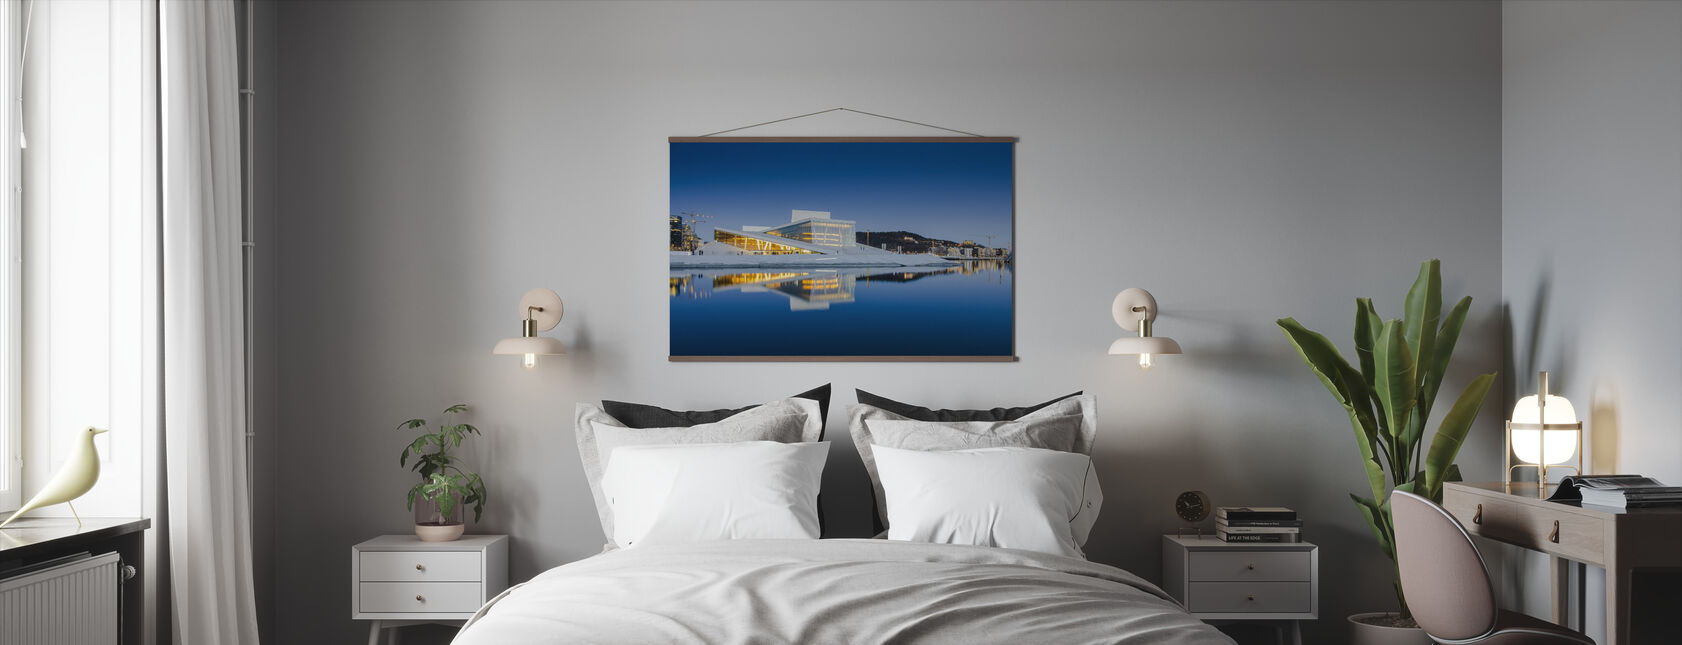 Oslo Opera House by Night - Poster - Bedroom